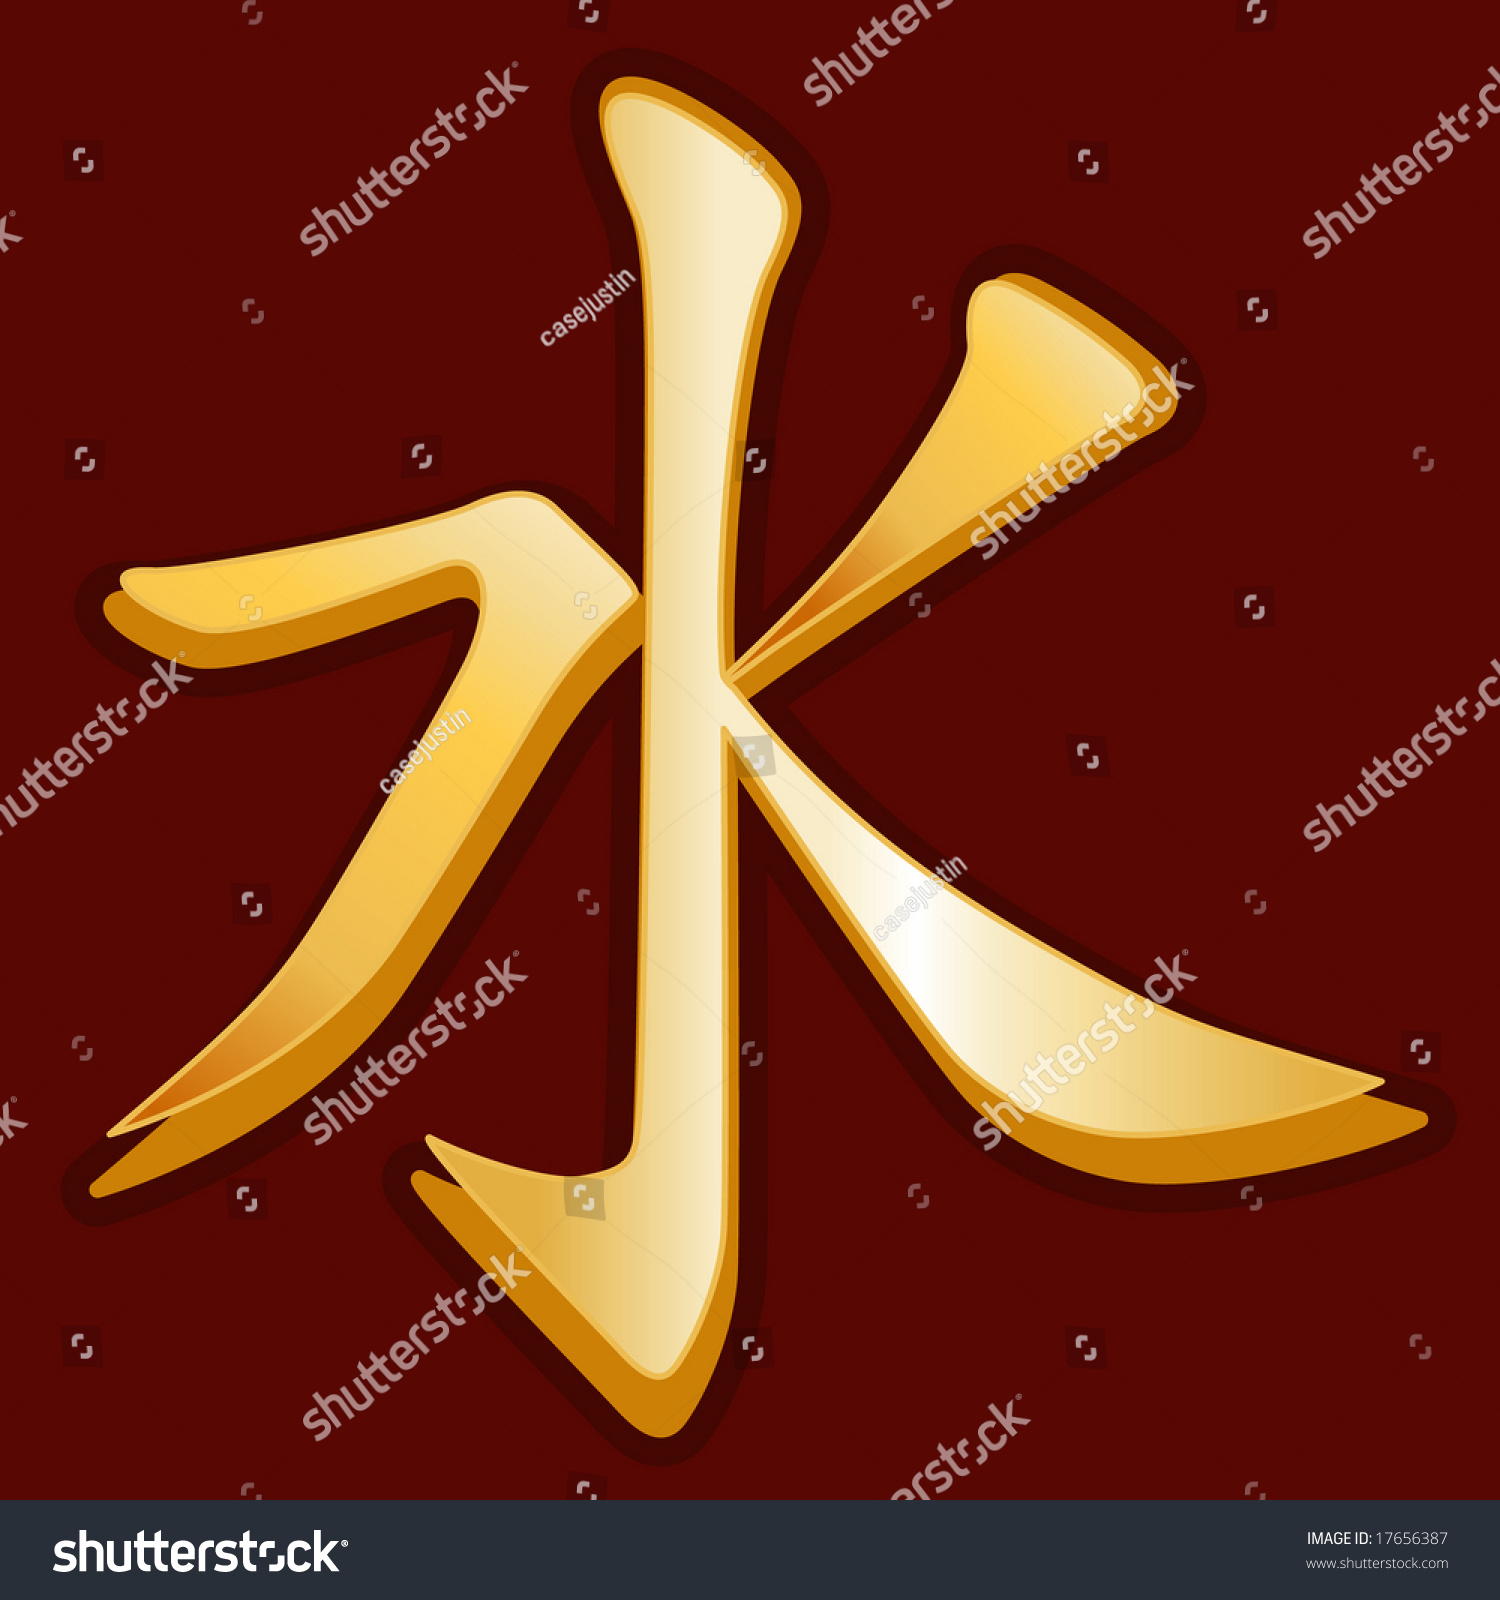 religion on confucianism Confucianism the word confucianism implies the existence of a philosophy, a religion, or a worldview that goes by the name confucian ideas or attributes are assumed to have roots in.